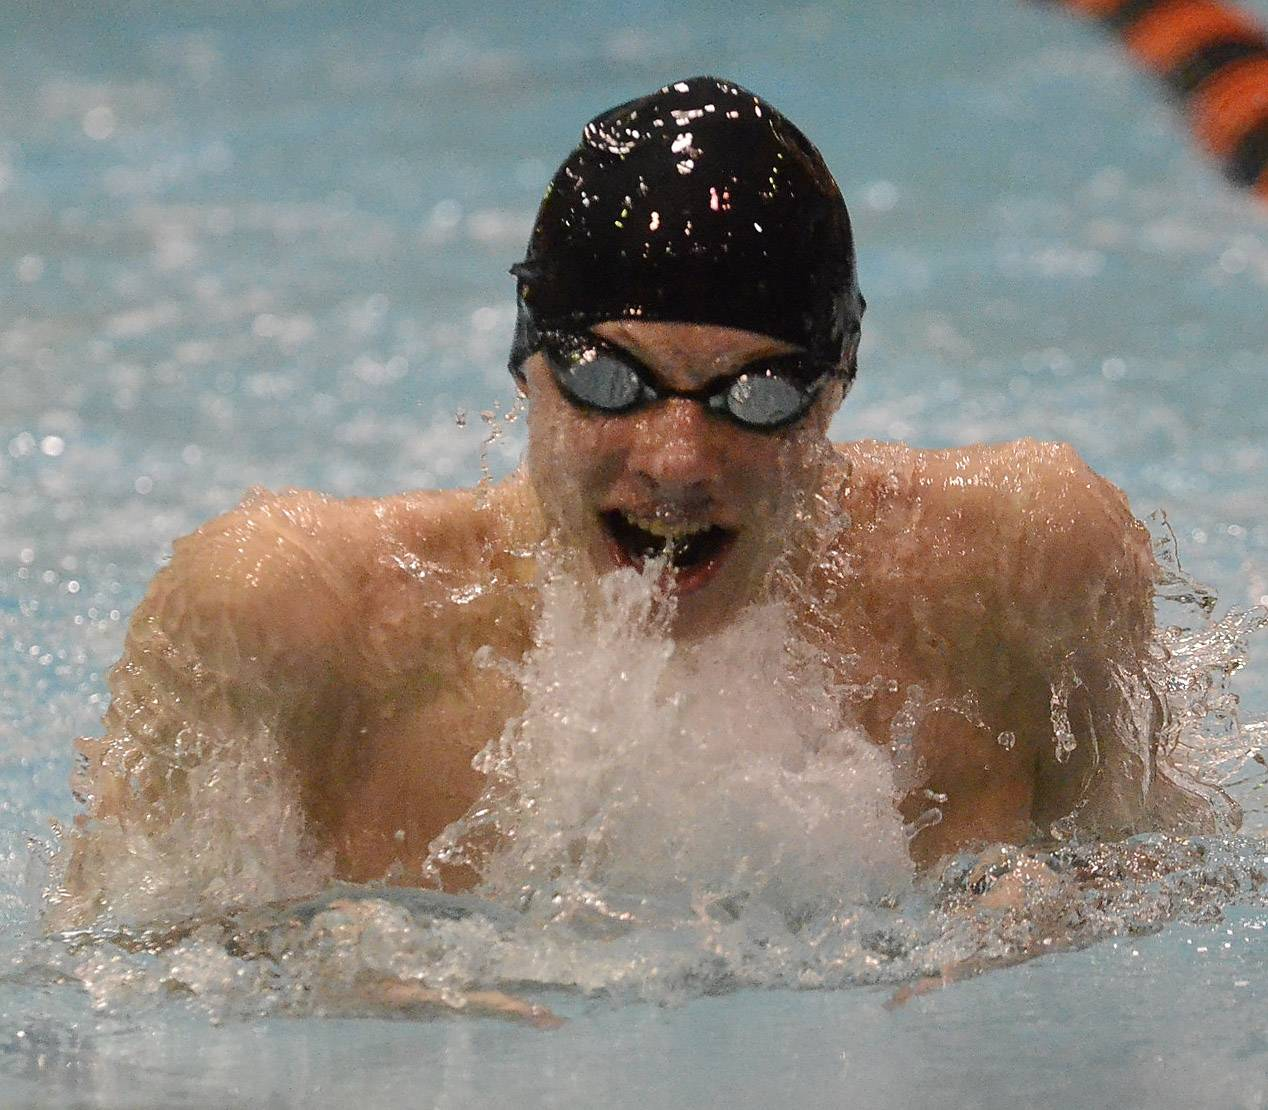 Jordan O'Brien of Metea Valley, Aurora, qualifies second in the 100 breaststroke during the IHSA state swimming prelims Friday at Evanston High School.